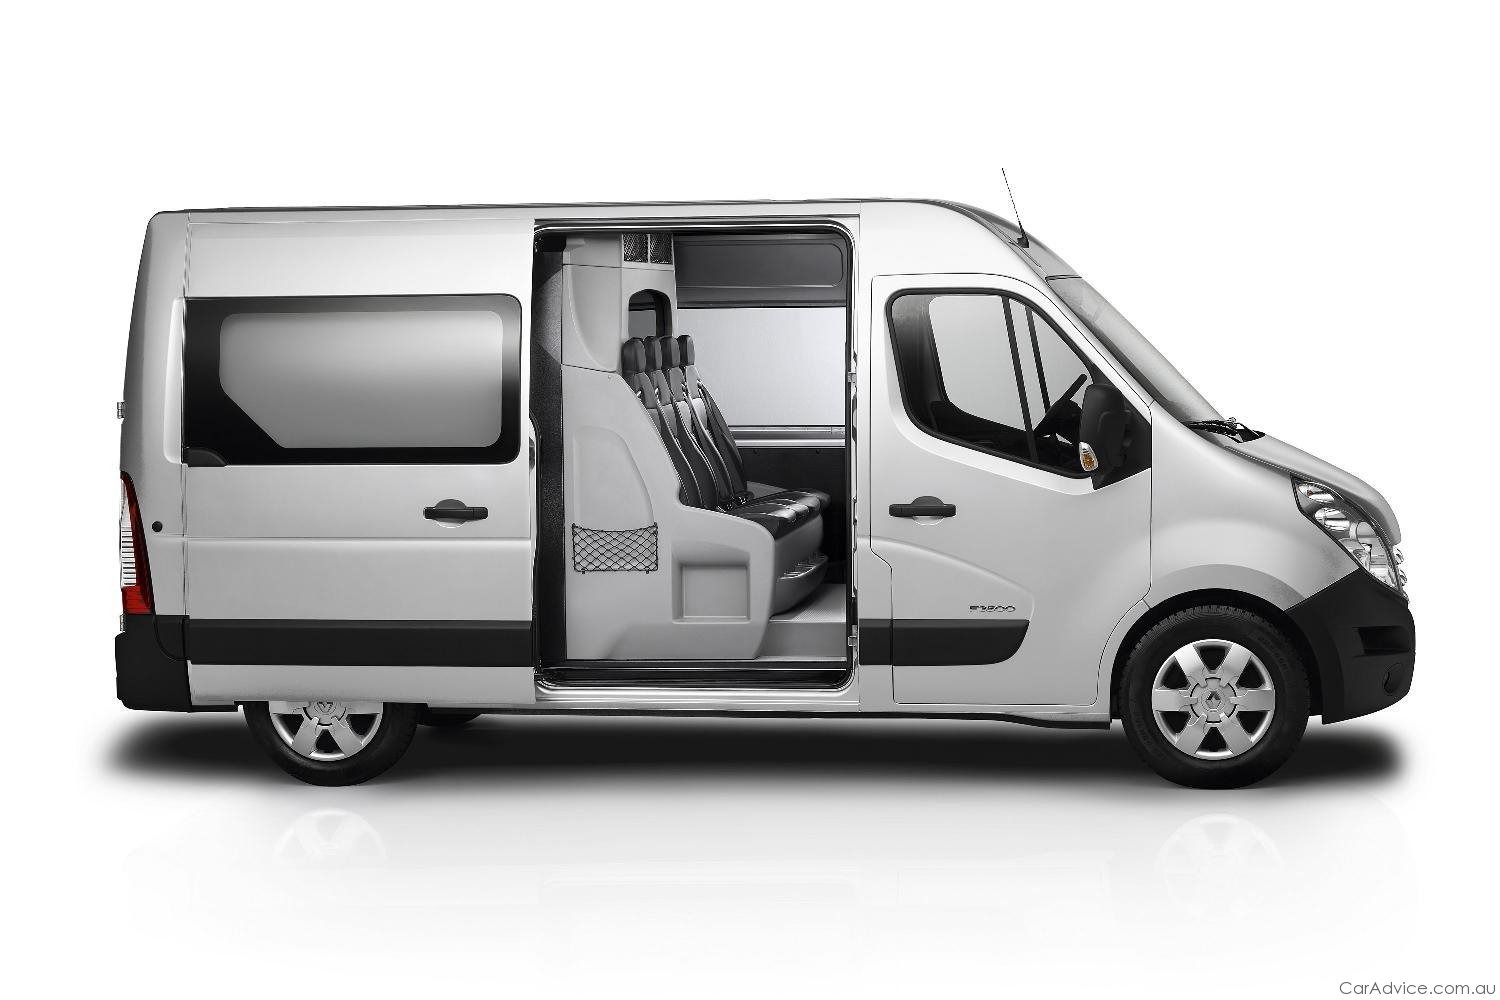 renault master renault trafic and renault kangoo van ranges all updated photos 1 of 10. Black Bedroom Furniture Sets. Home Design Ideas